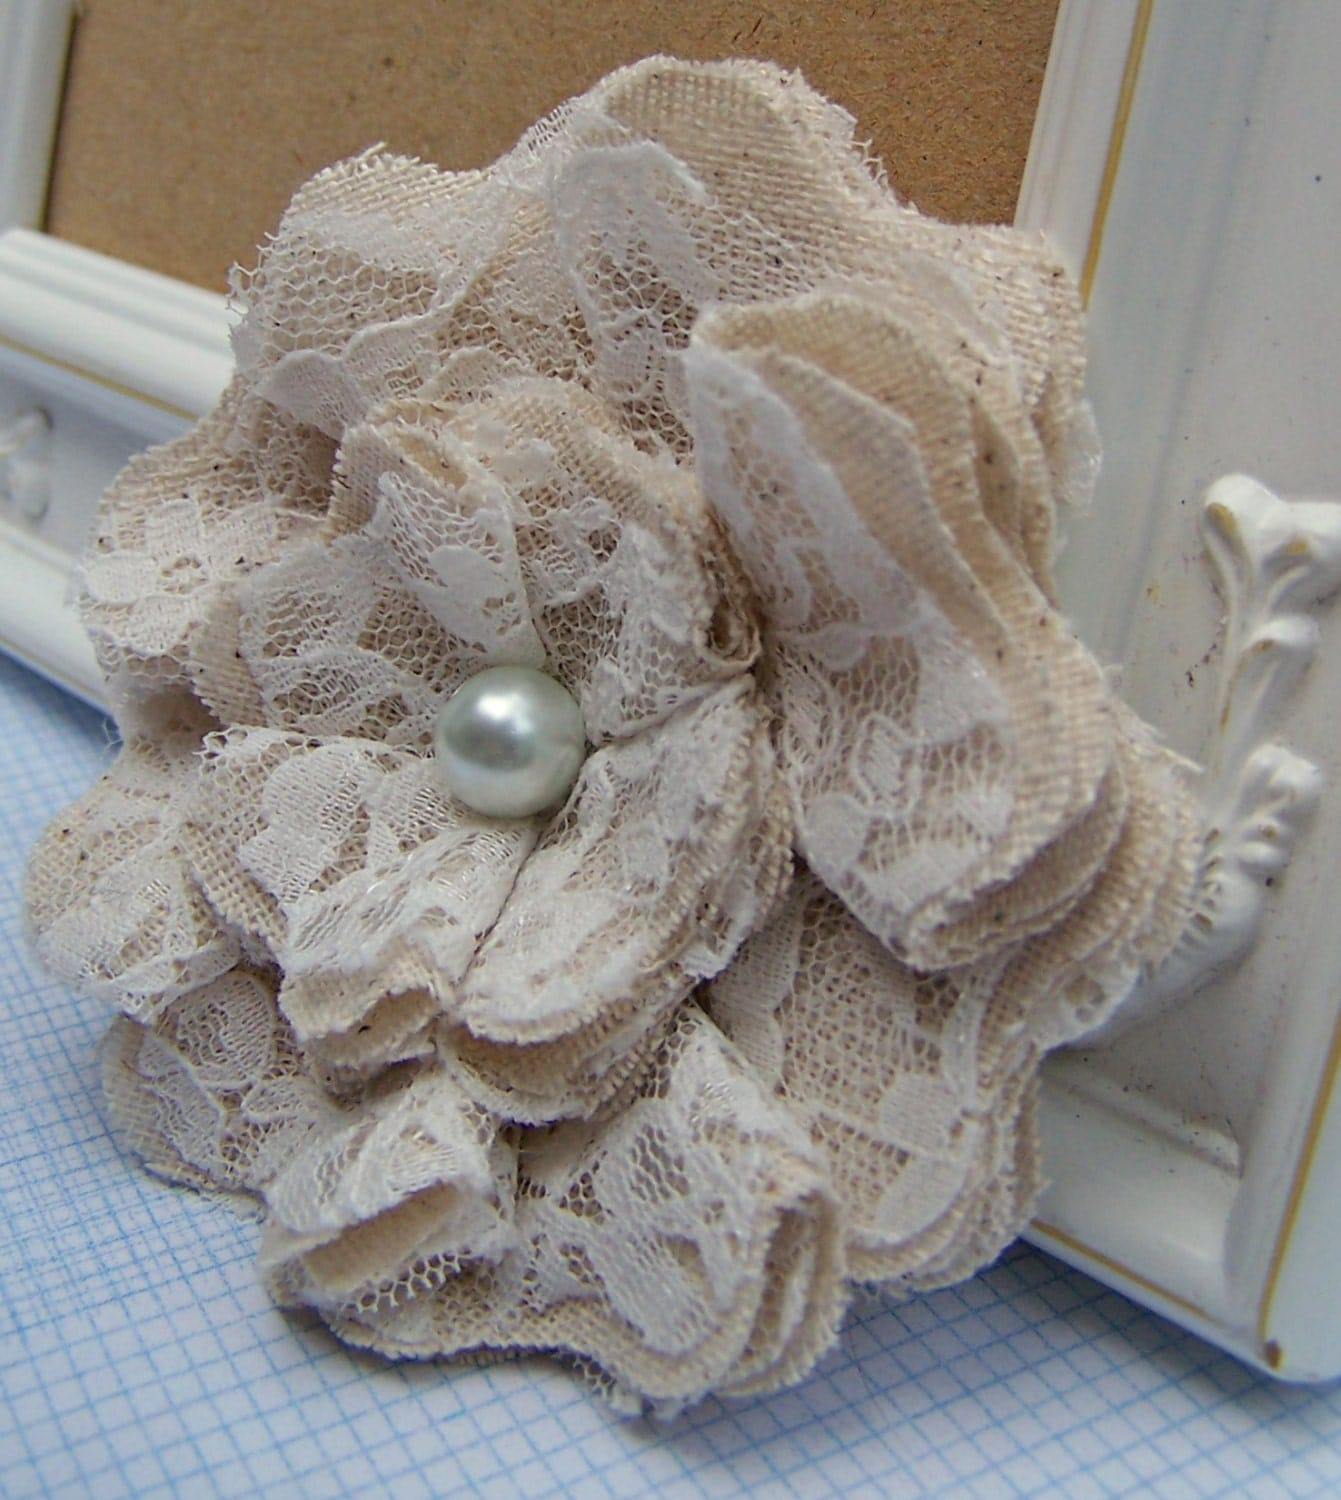 Making Fabric Flowers Wedding: Lace Shabby Chic Fabric Flowers Set Of 2 By Curtseyboutique